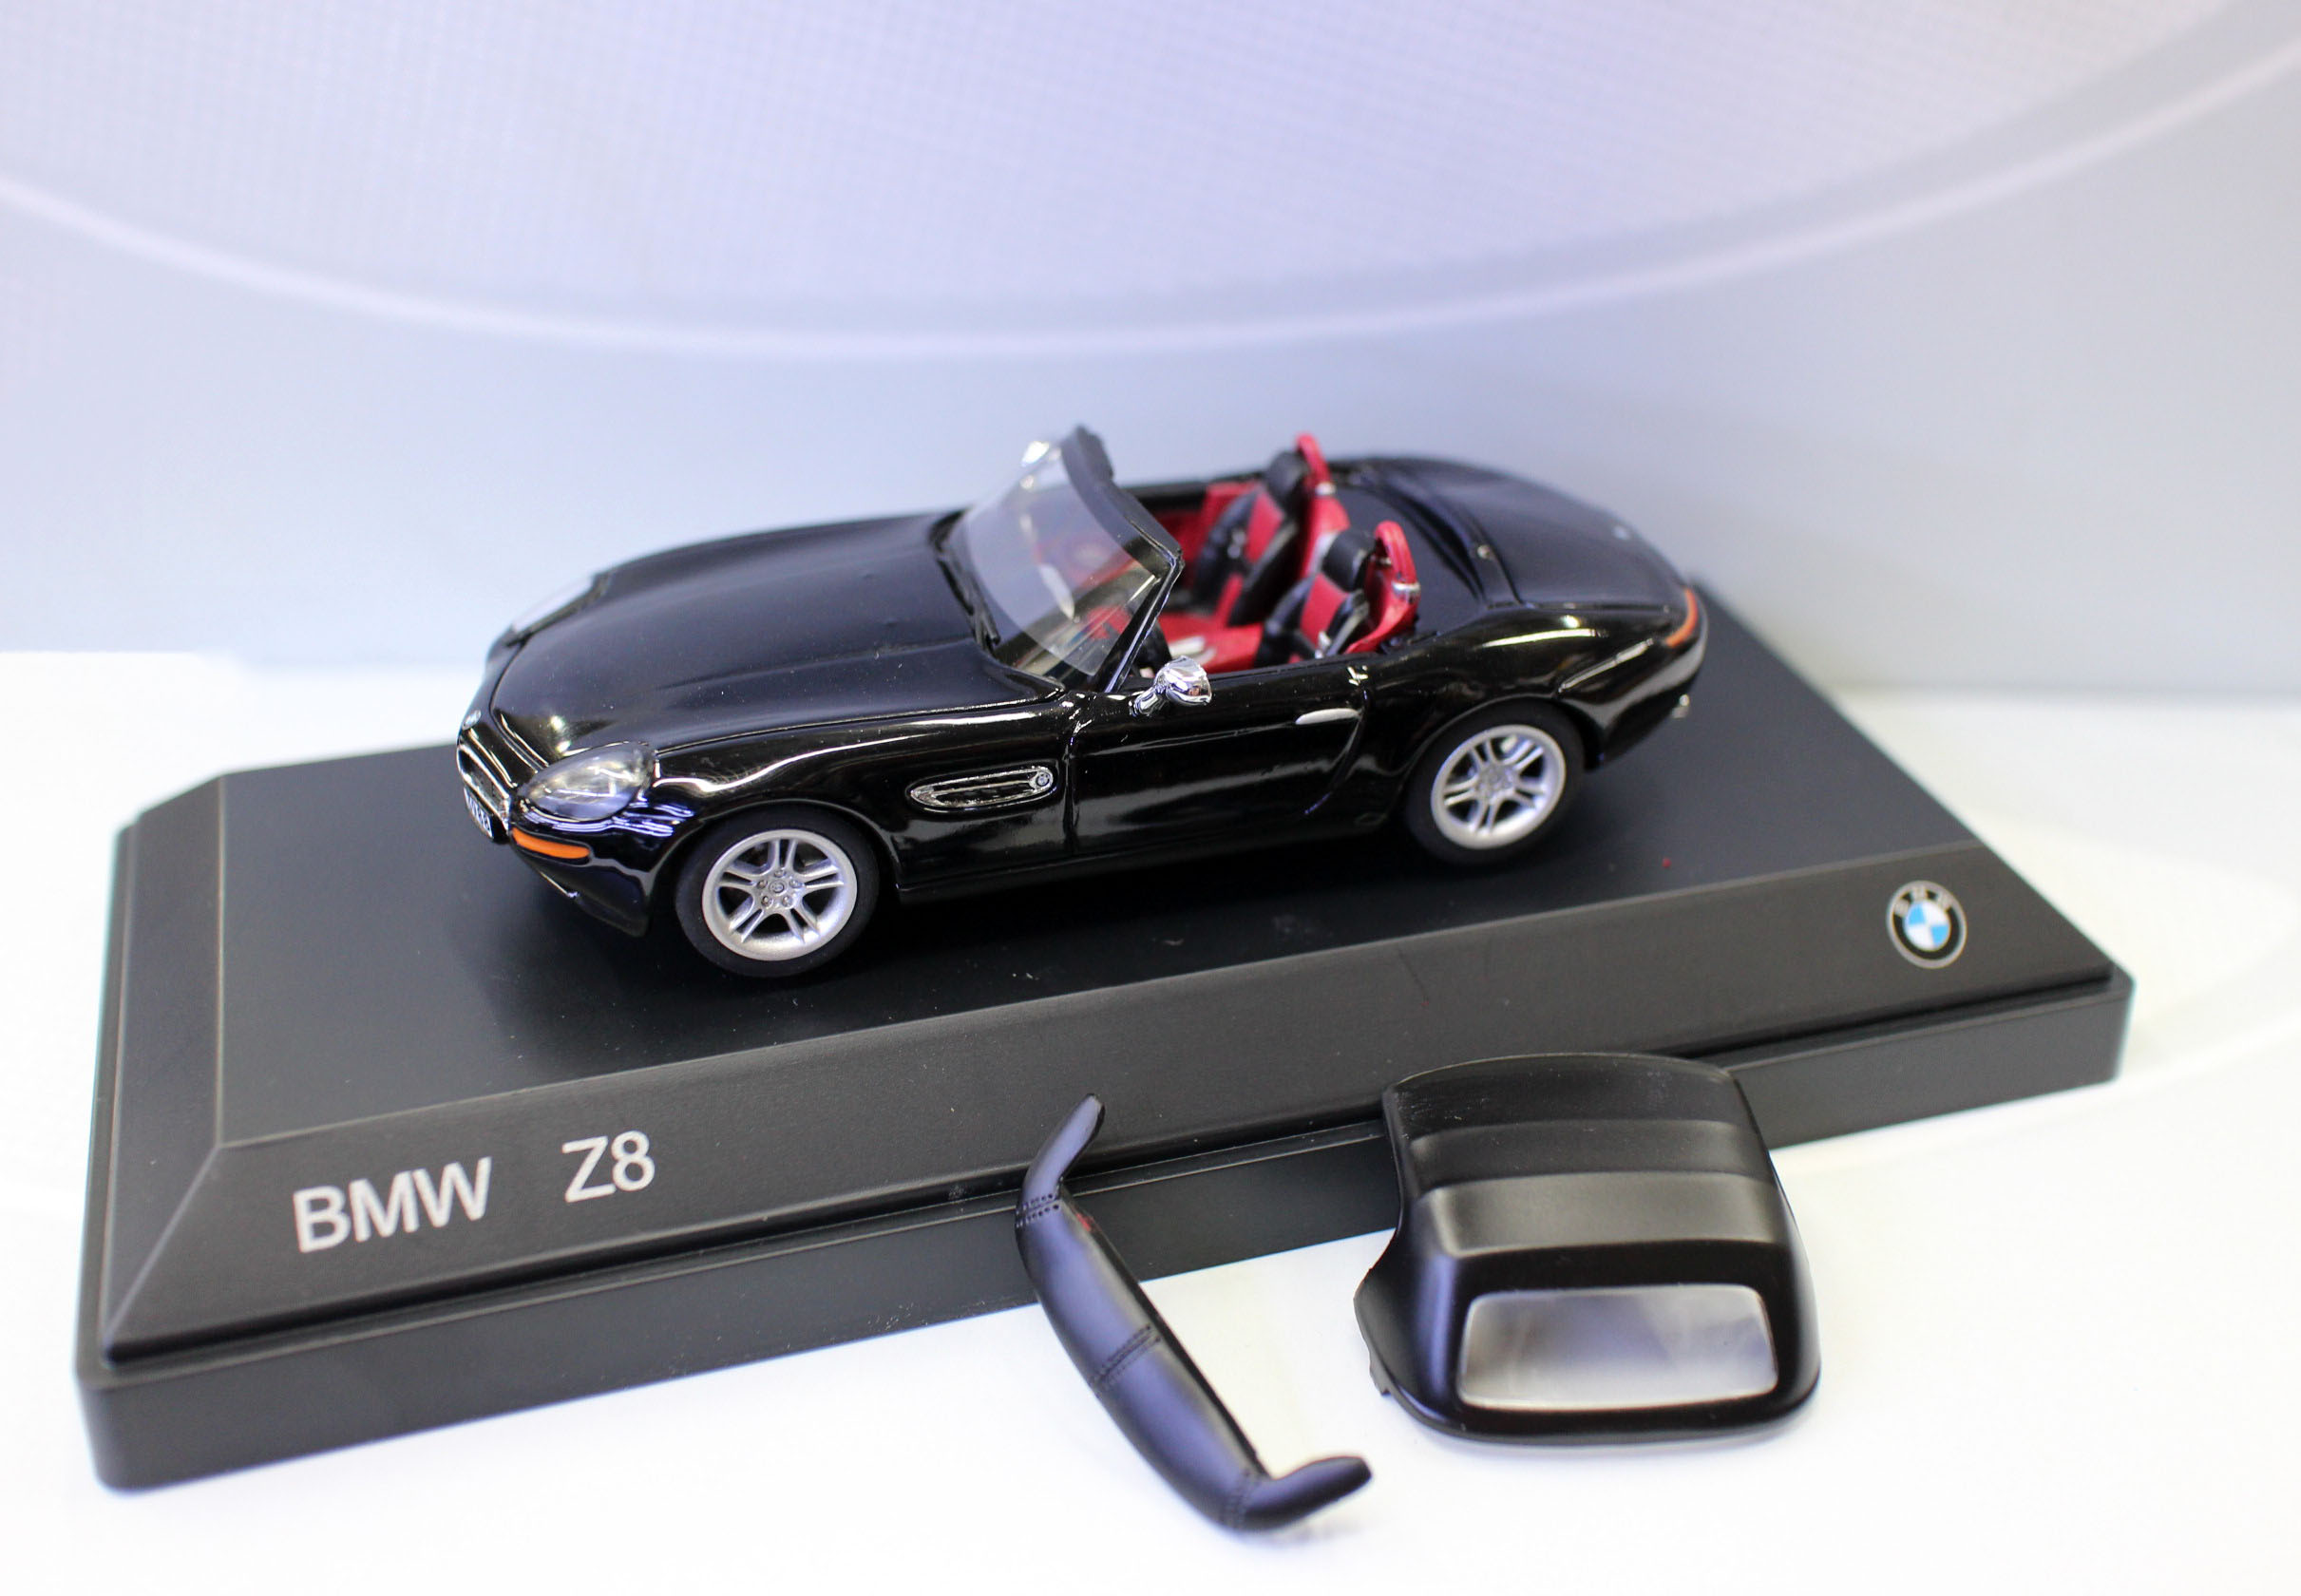 NEW Diecast Models car 1/43 Scale BMMW Z8 in Carboneblack met toys cars model for collection gift ixo altaya 1 43 scale ford mustang shelby gt 350h 1965 cars diecast toys models limited edition collection white